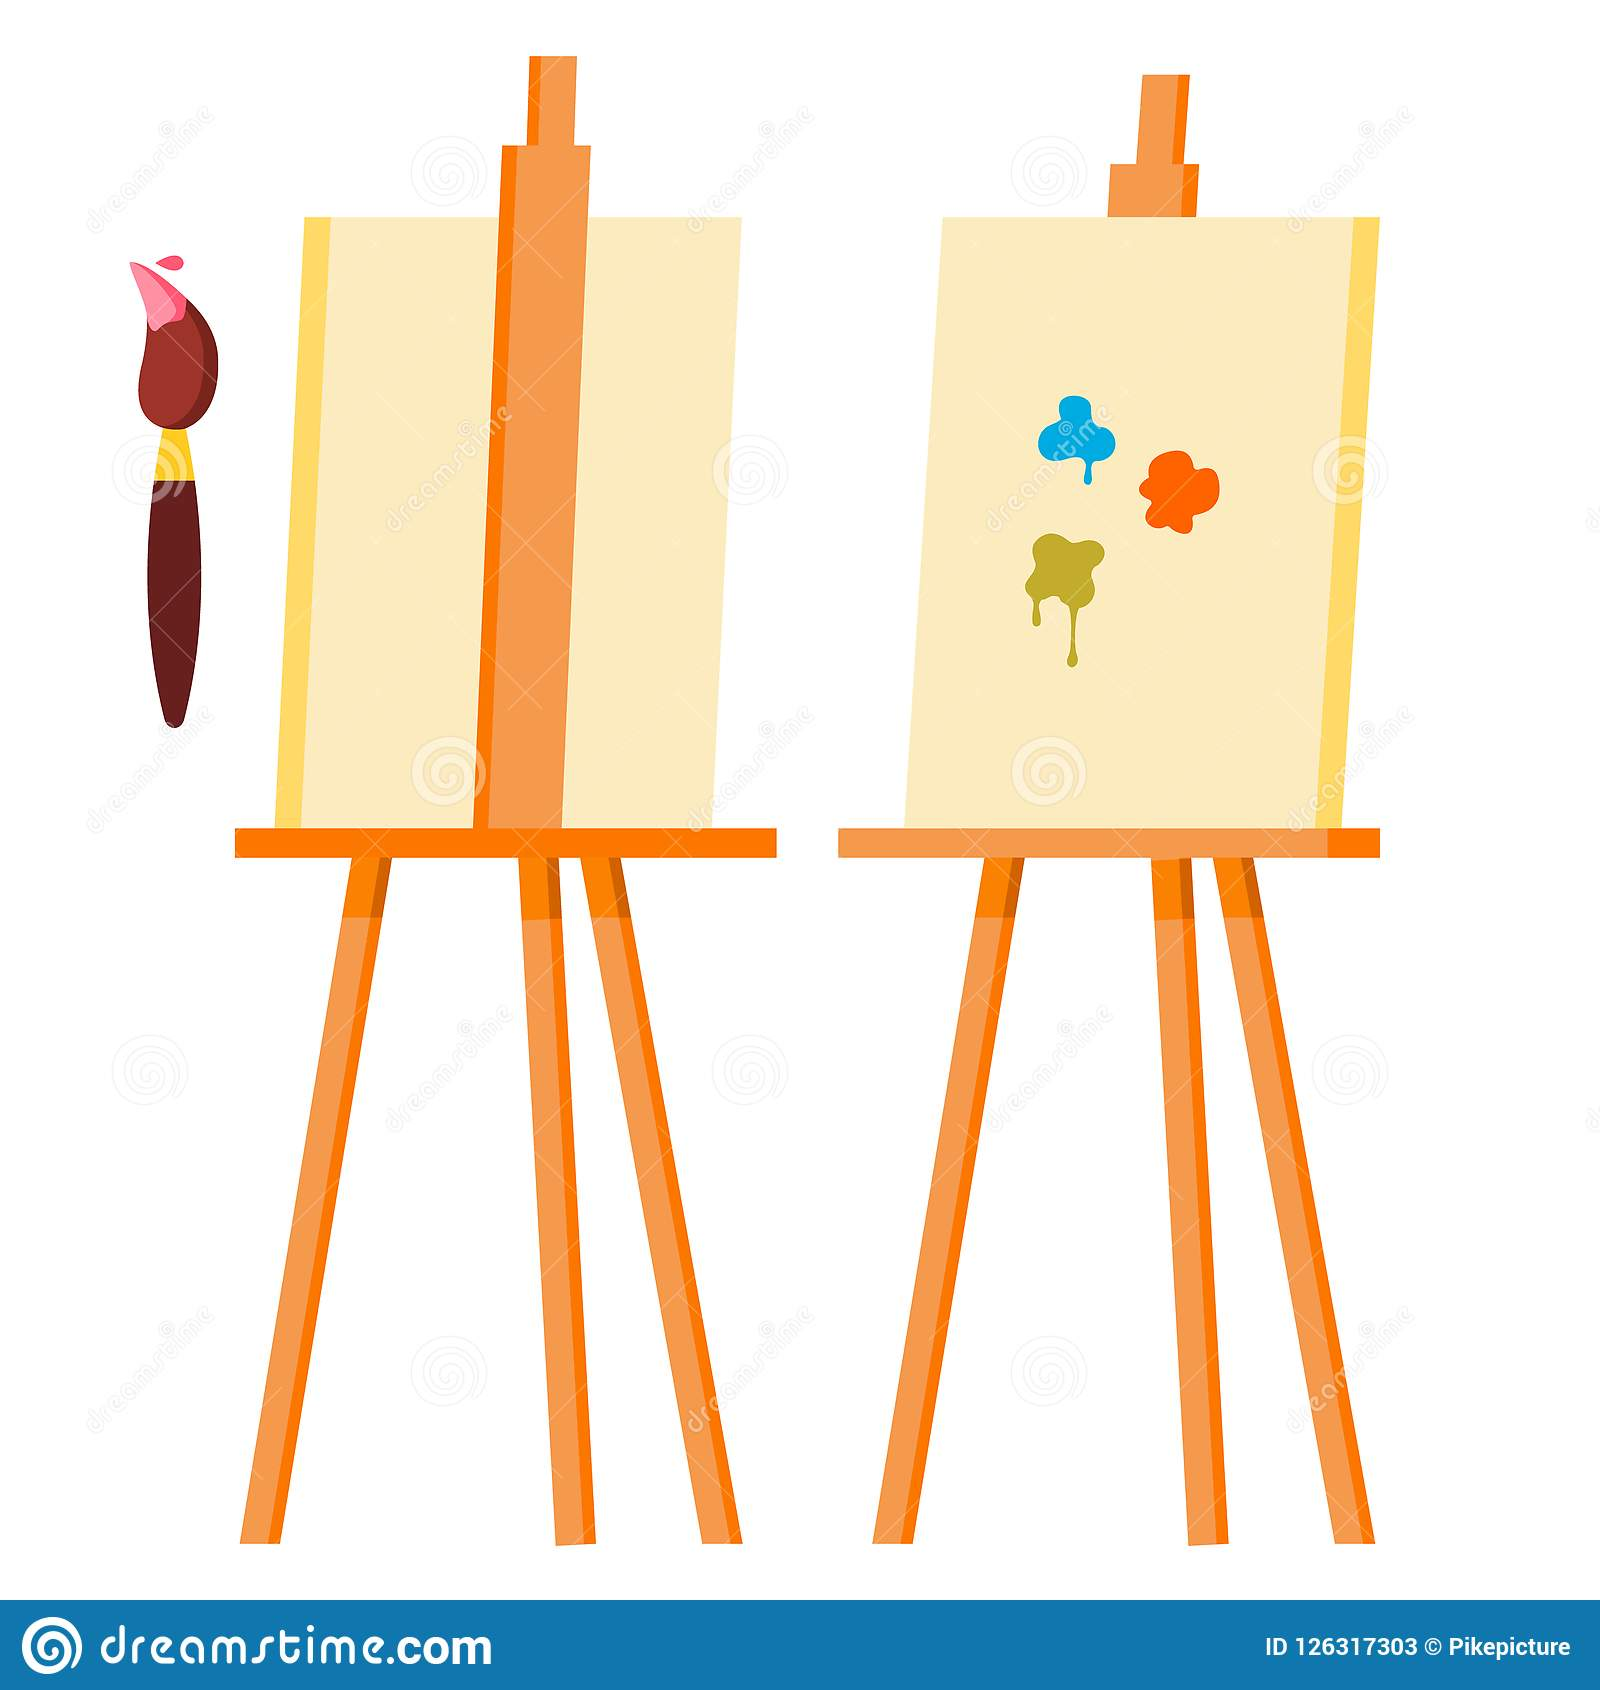 Easel Vector. Painting Art Icon Symbol. Brush. Canvas For Sketch. Isolated Cartoon Illustration